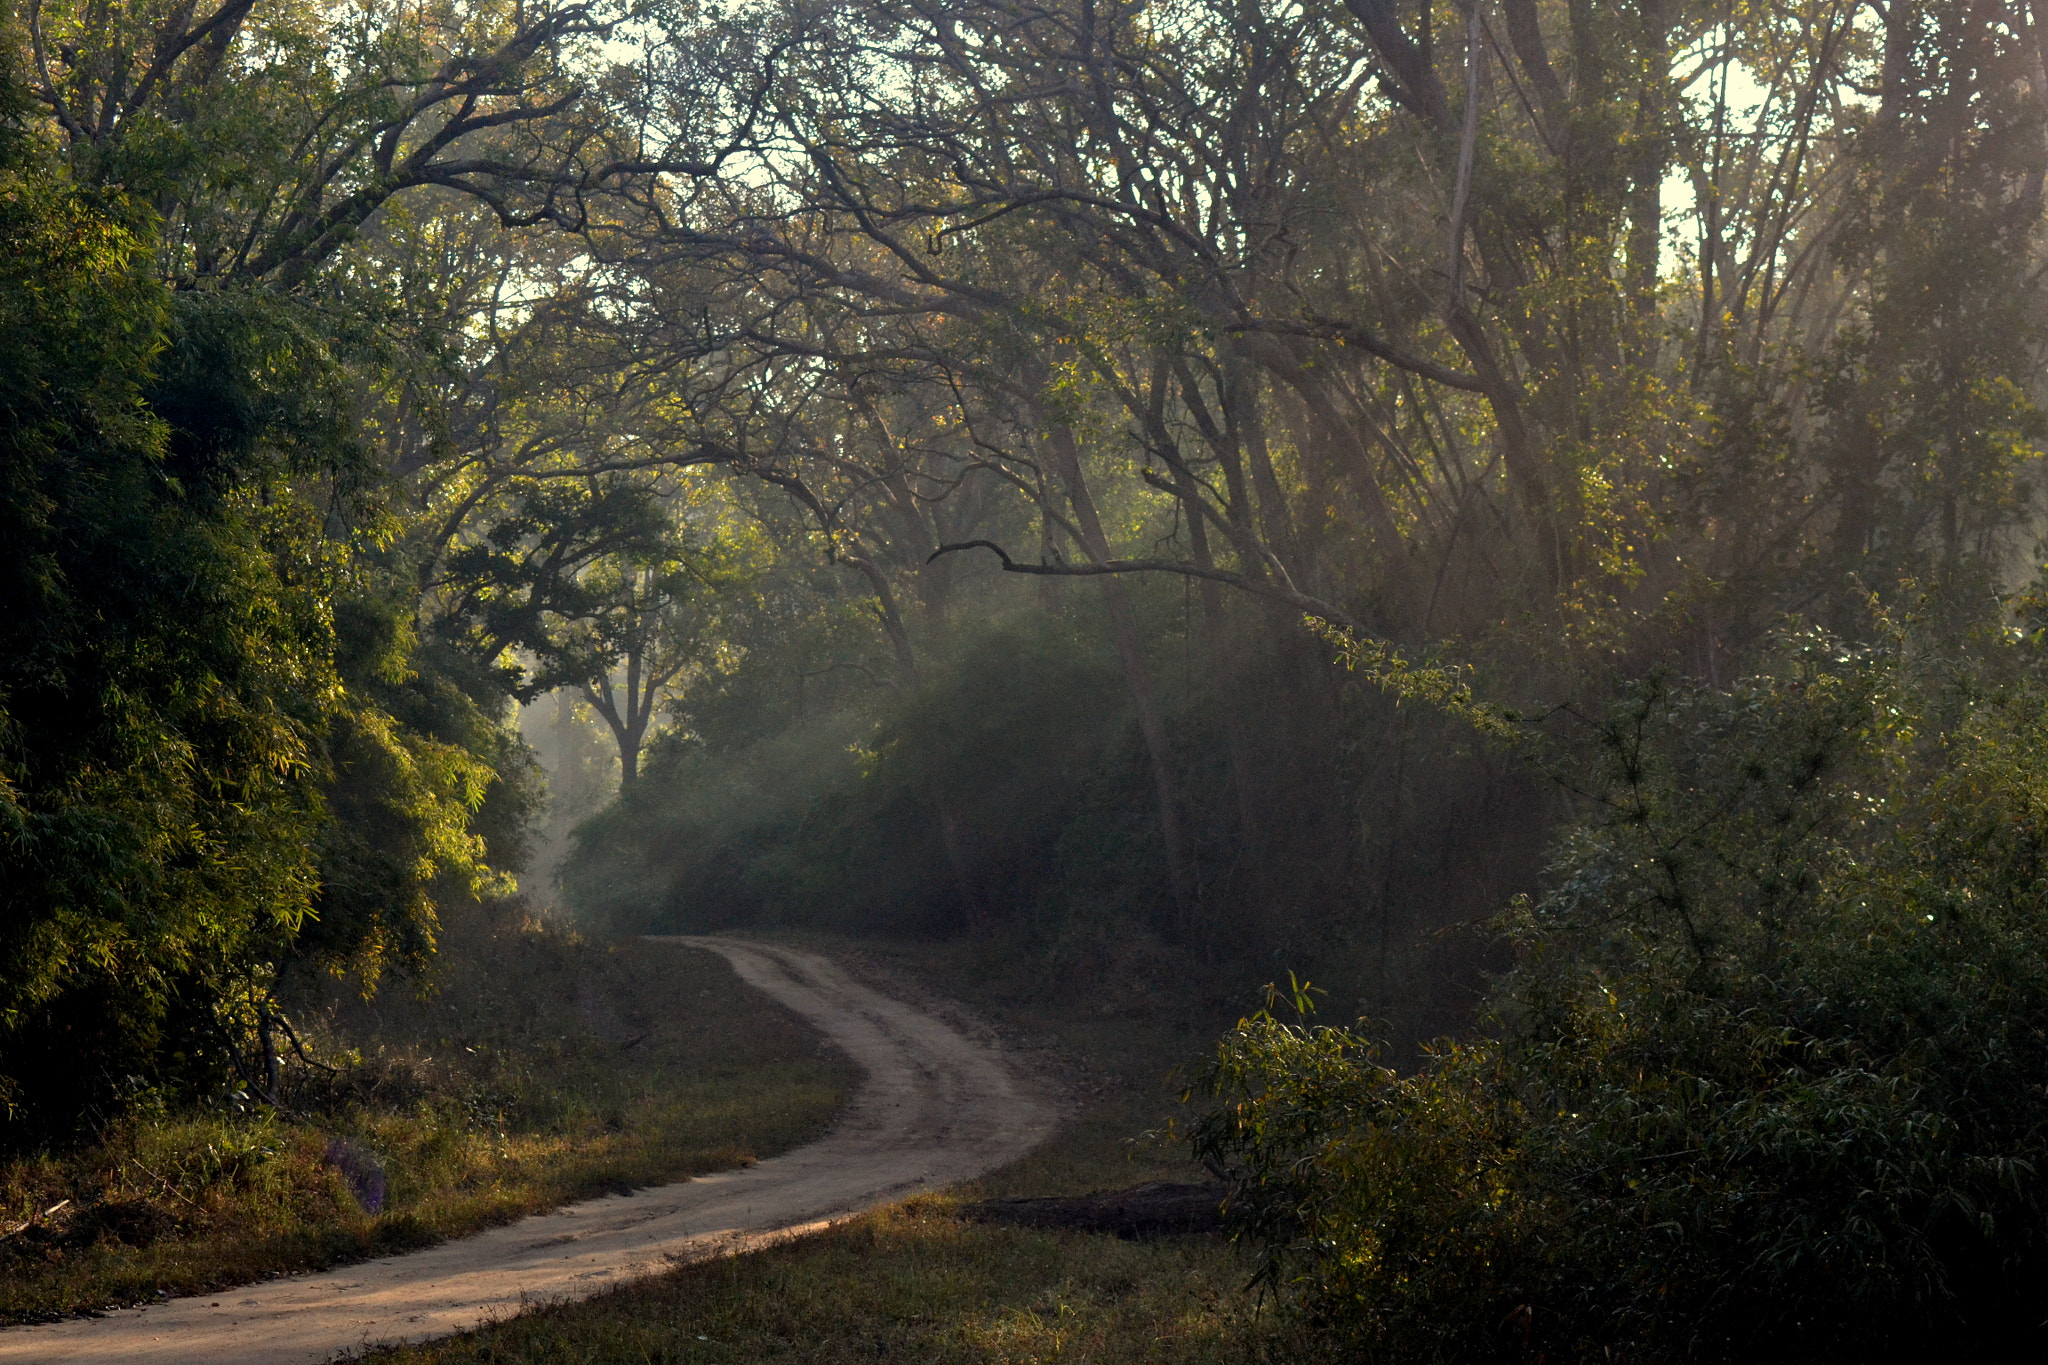 Photograph The Mesmerising forests of Kanha by Abhinandan Shukla on 500px